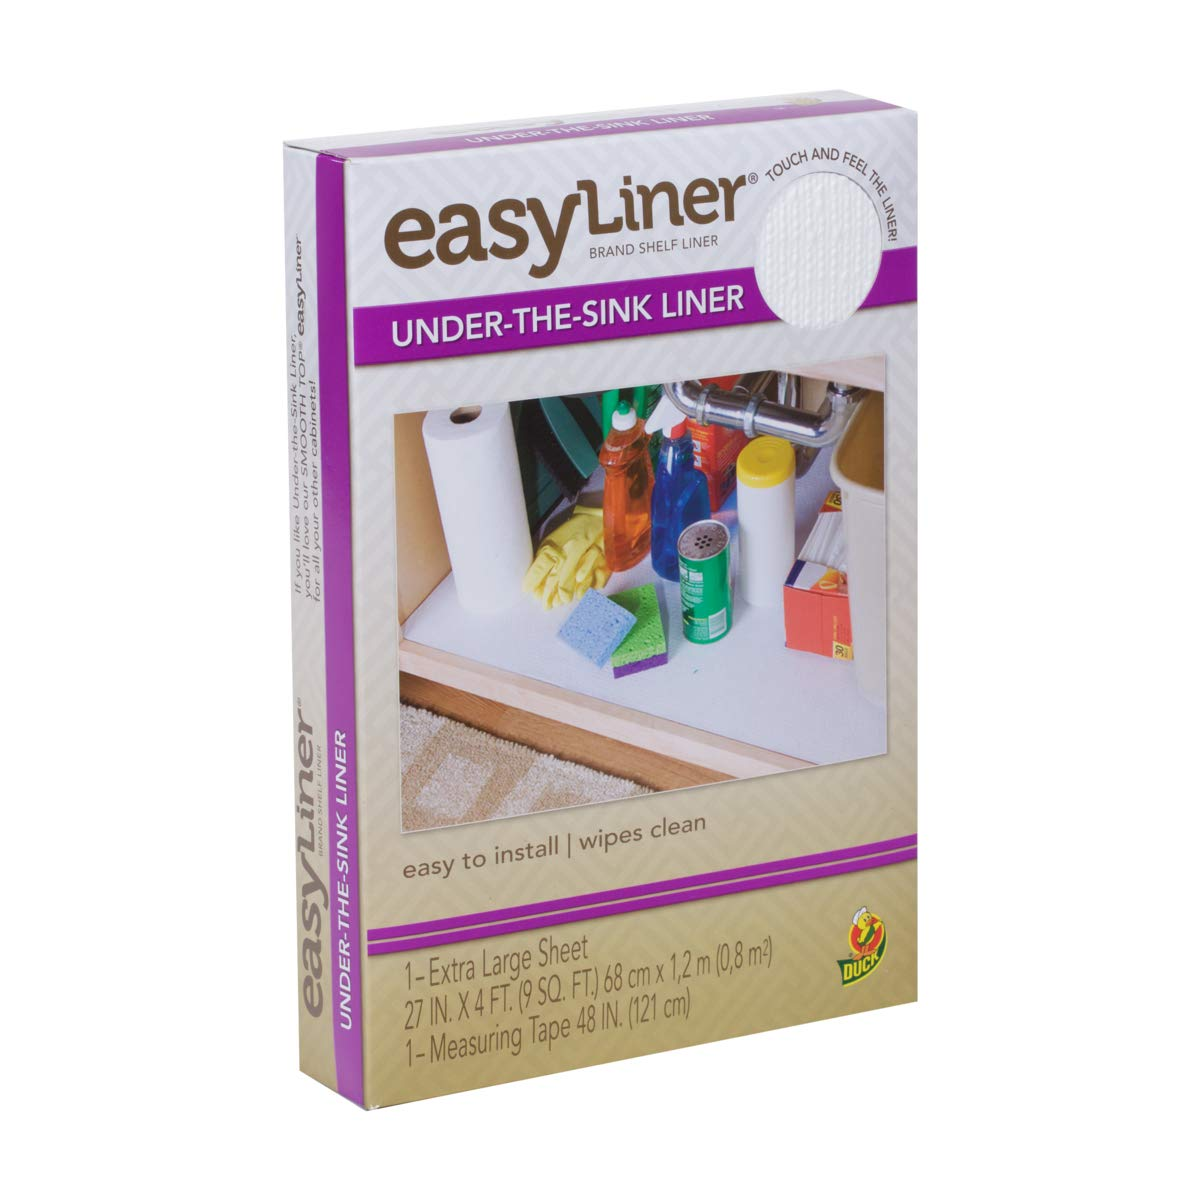 Duck Easy Liner Under-the-Sink Liner, Non-Adhesive, White, 27 Inches x 4 Feet (280741)